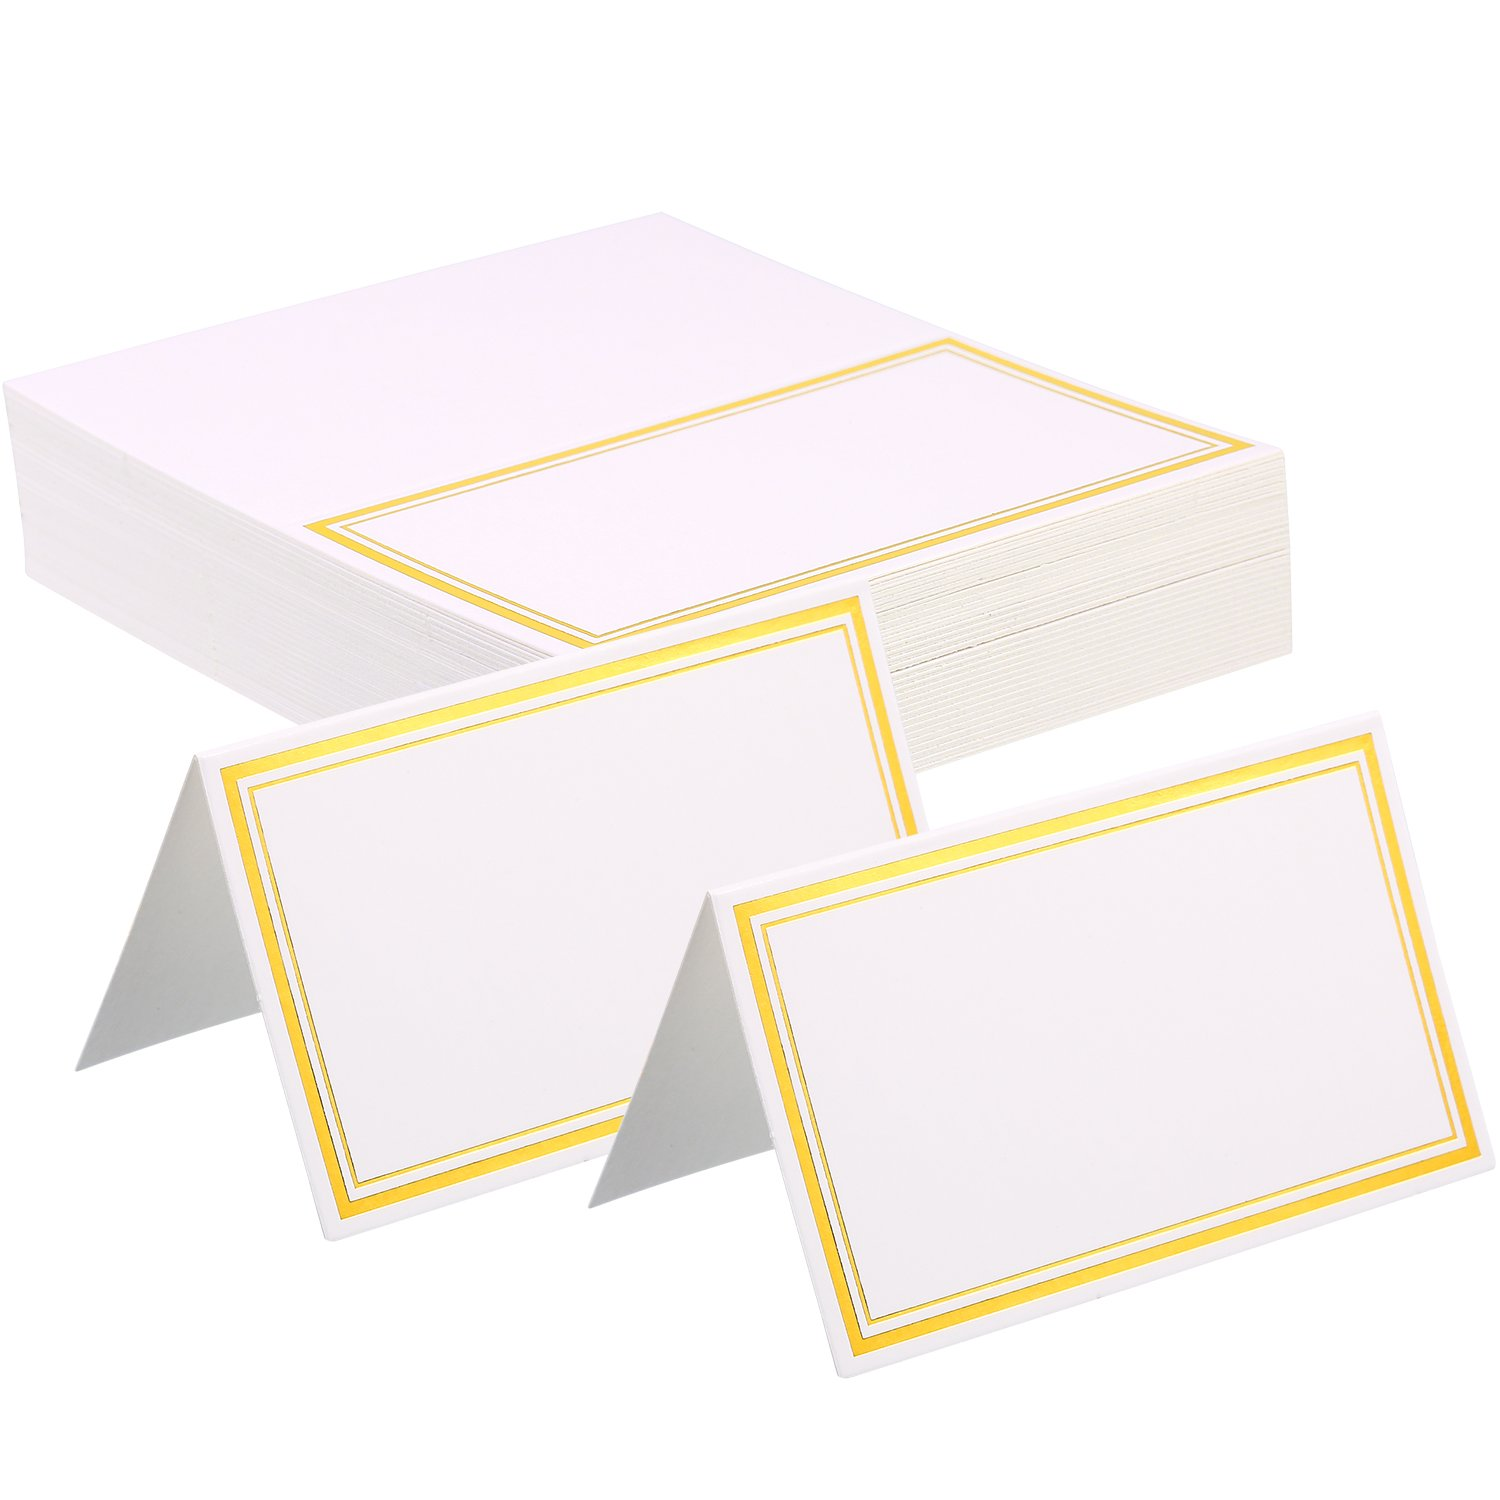 Zhanmai Place Cards Table Tent Name Place Cards Seating Cards Name Tags with Gold Foil Border for Wedding and Banquets (120)